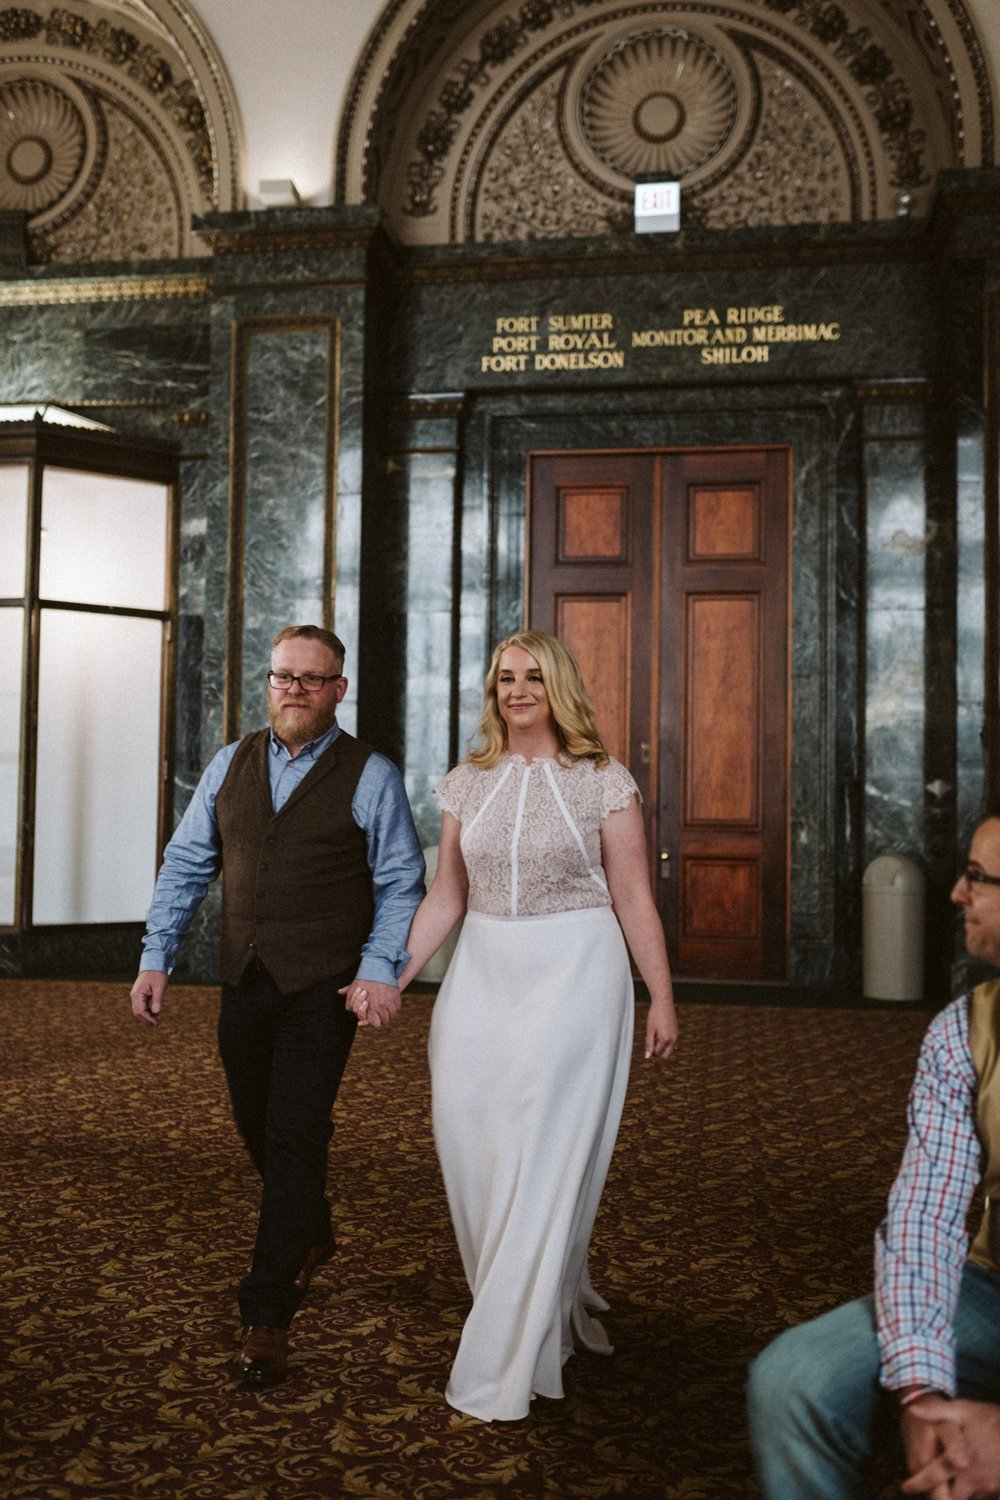 Chicago Cultural Center wedding | Chicago elopement | lisa kathan photography